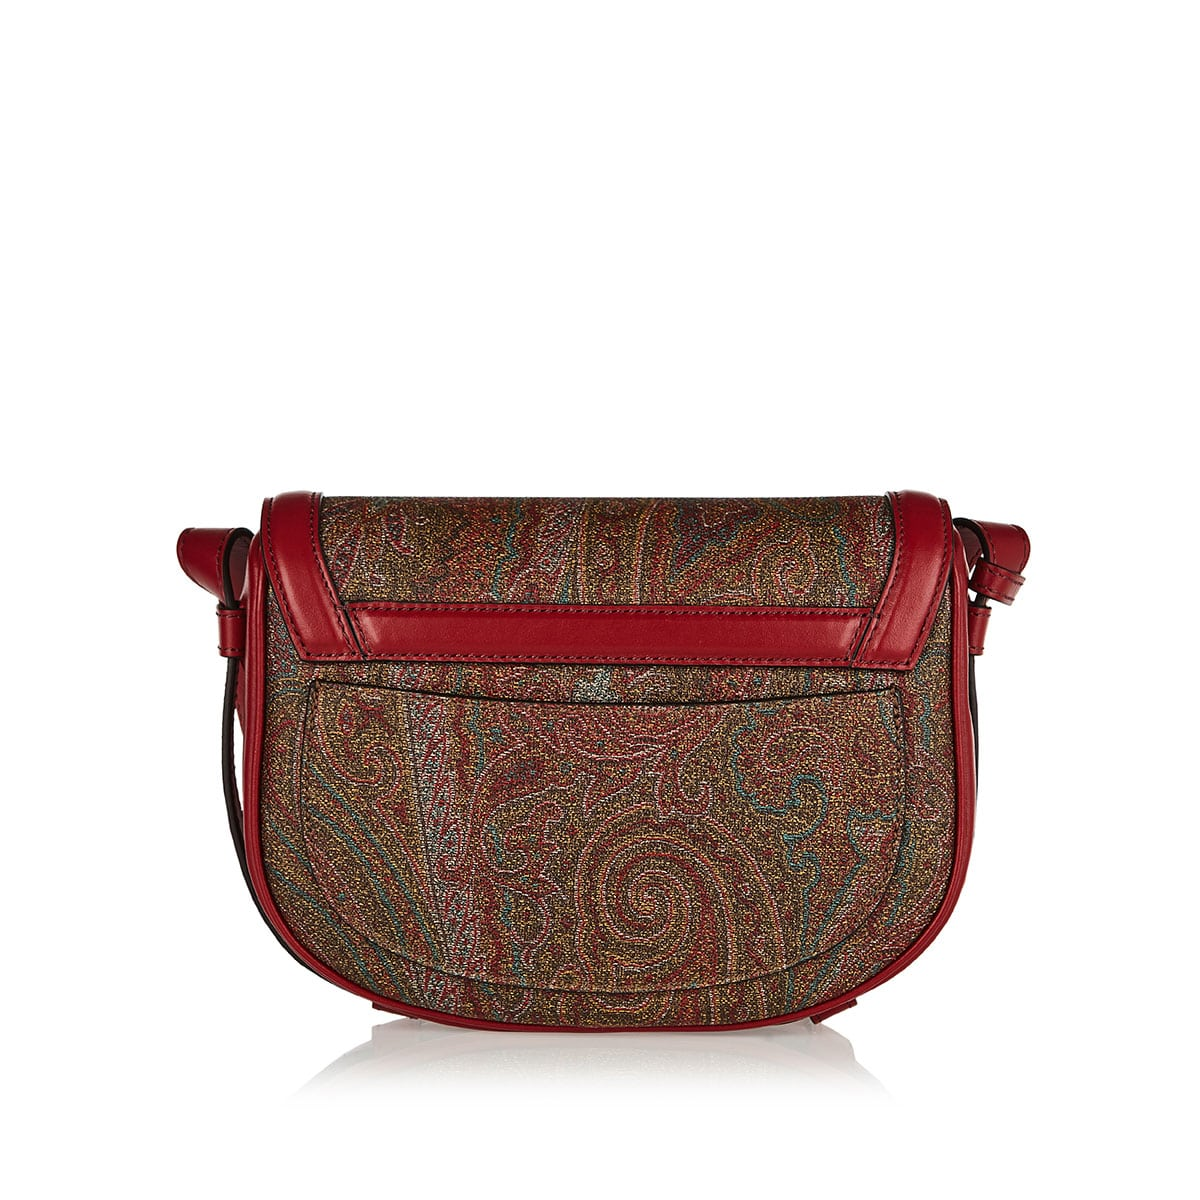 Pegaso printed leather-trimmed bag